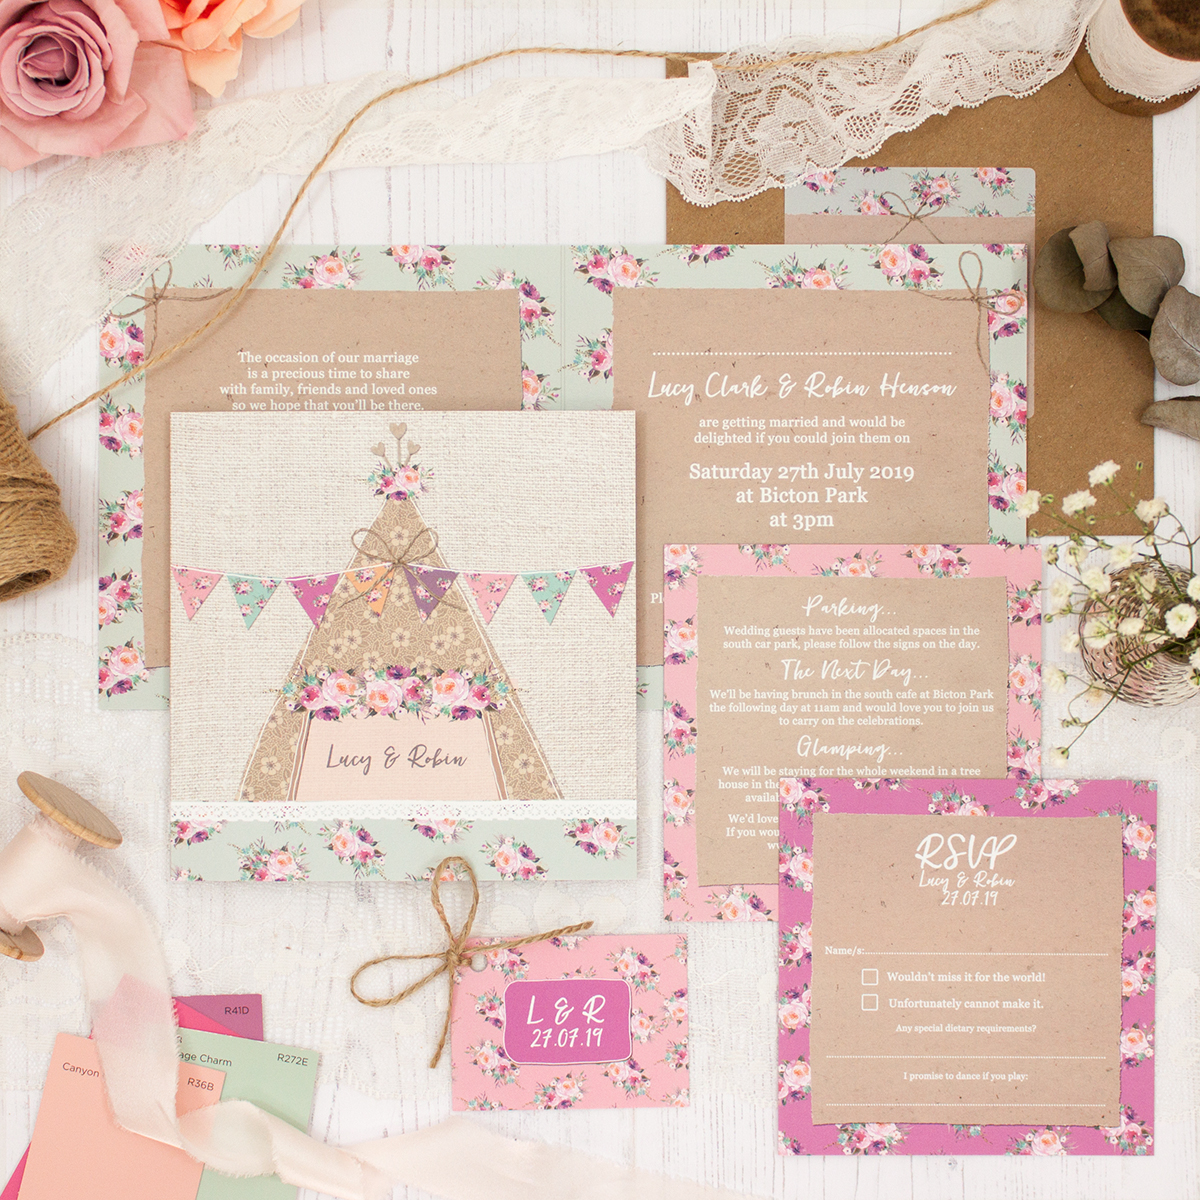 Tipi Love Wedding showing invitation